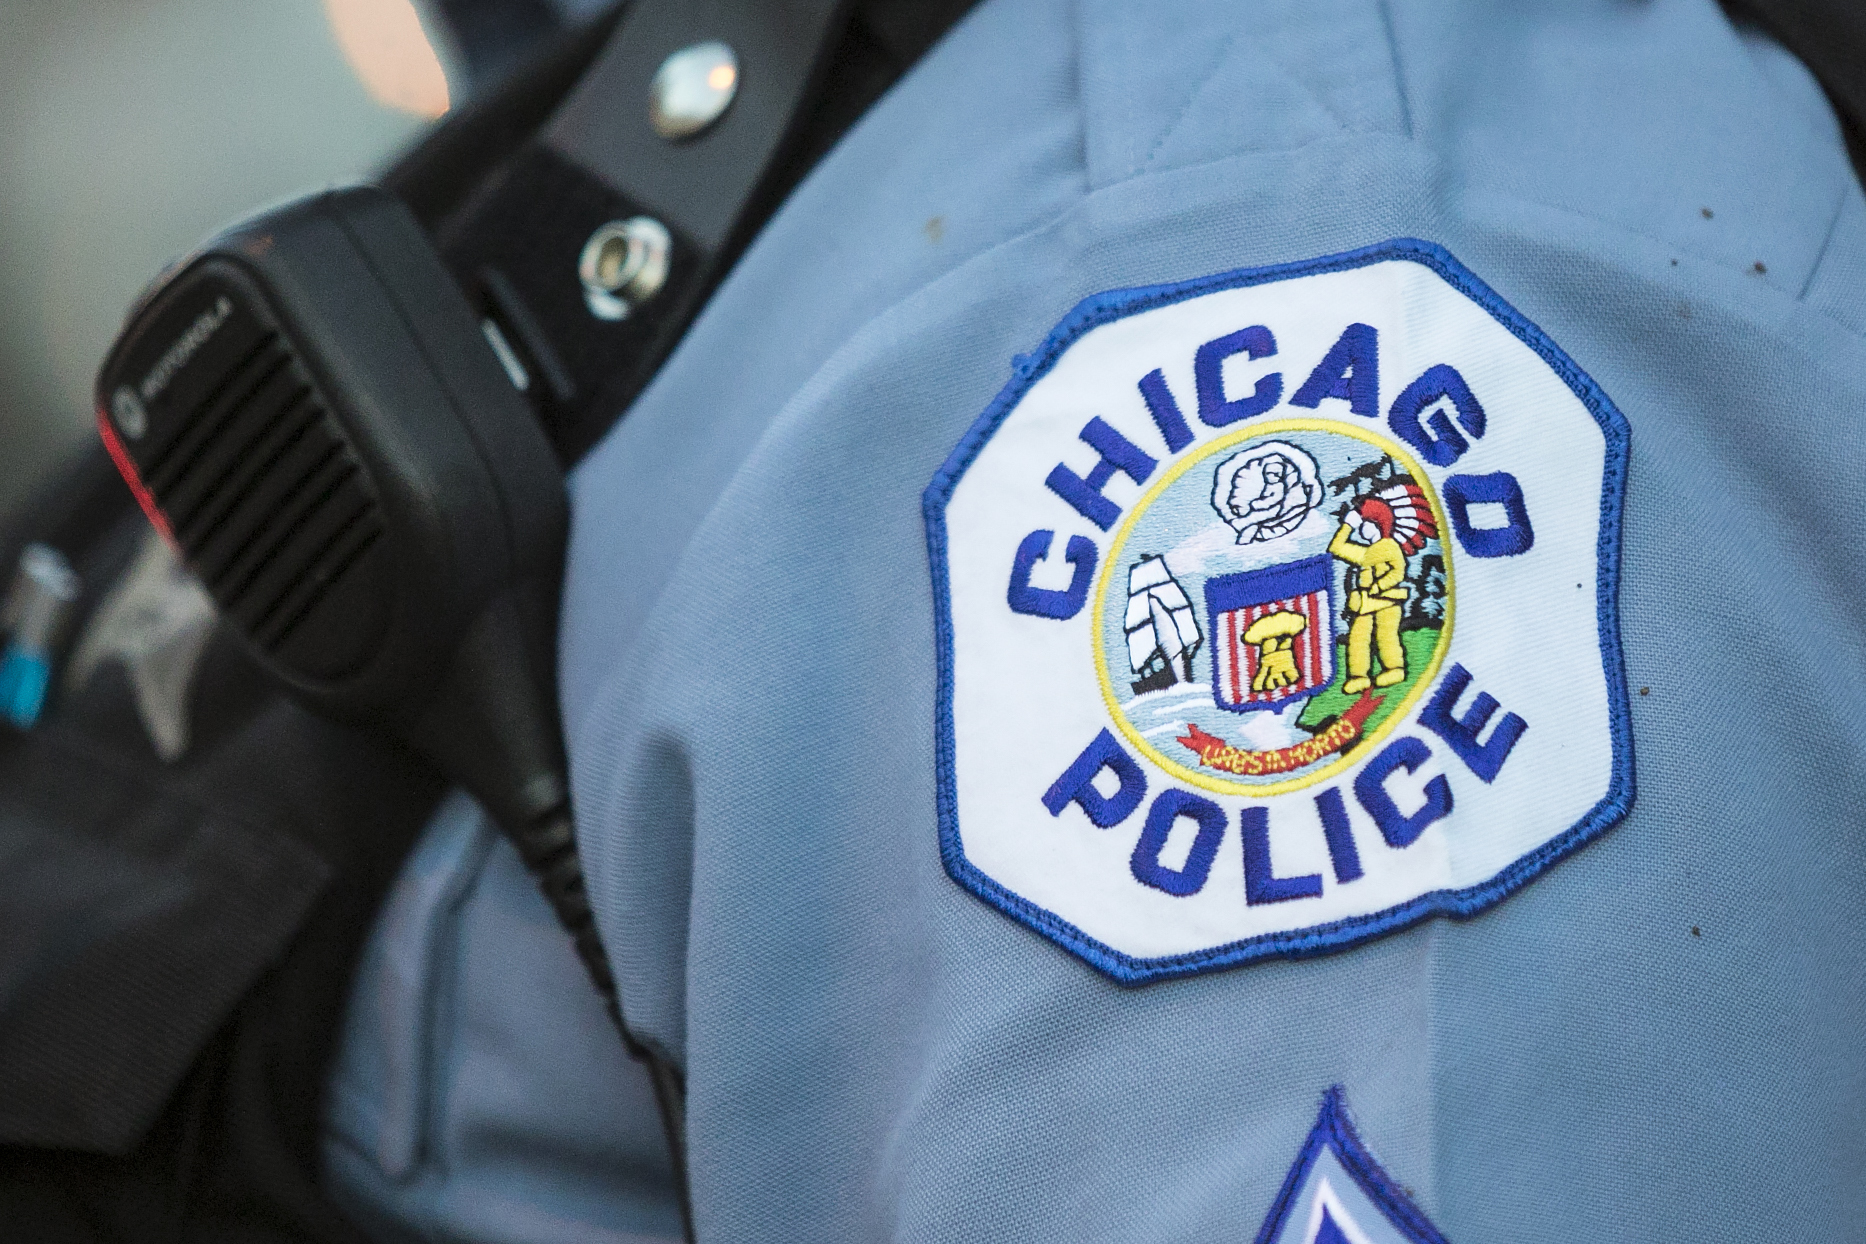 Two armed robberies were reported in September in Lawndale on the West Side.